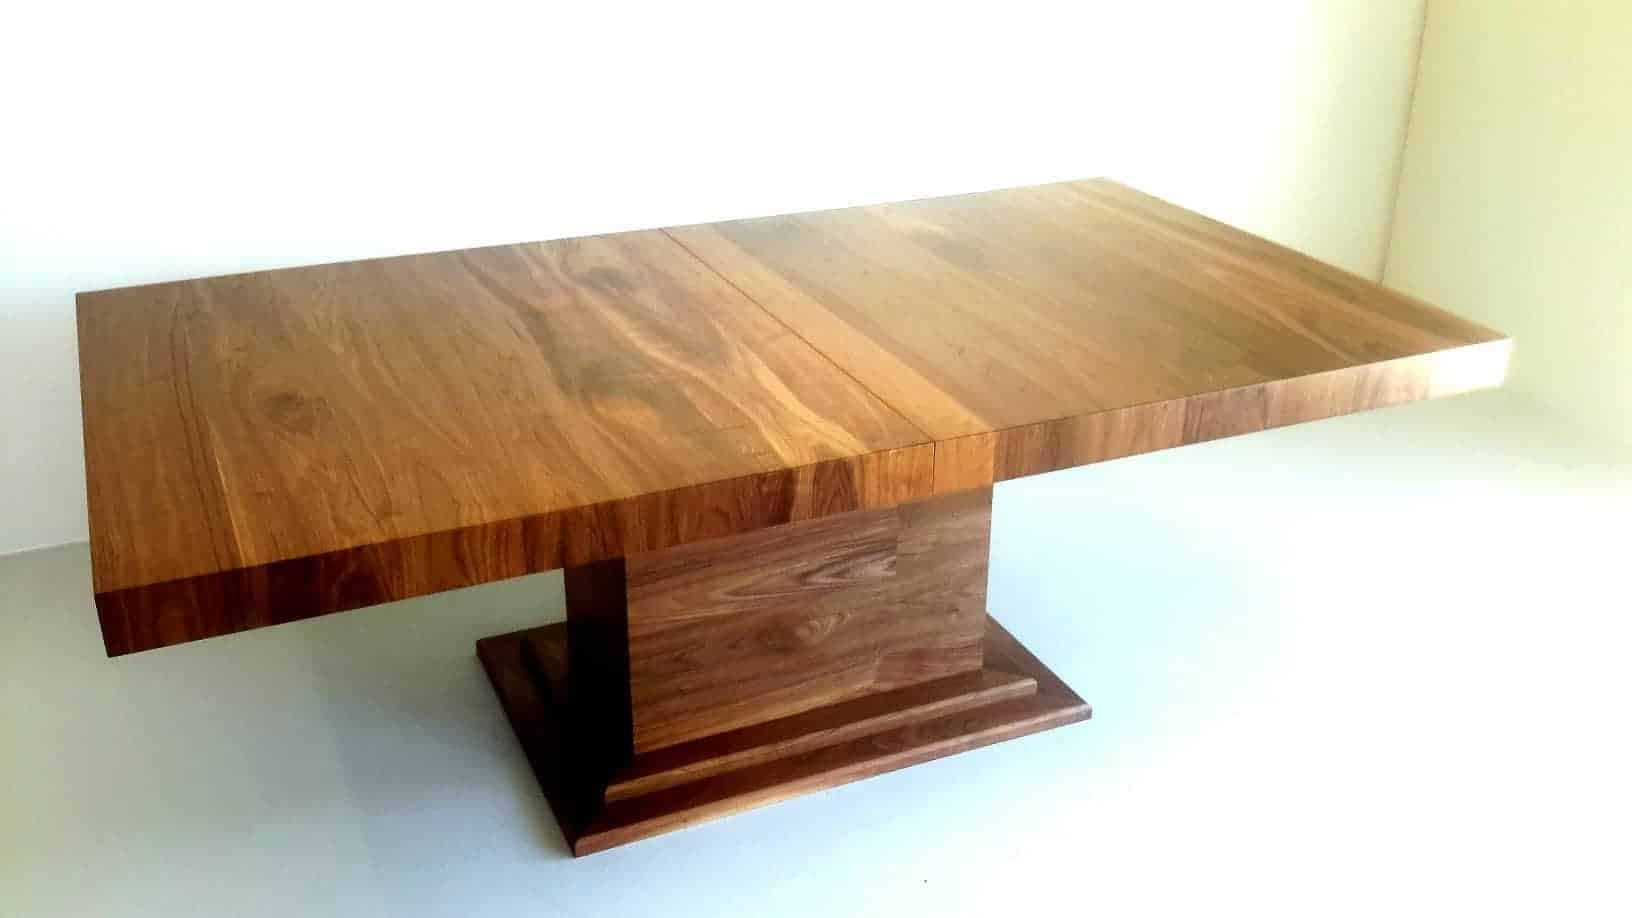 Abington Table custom made timber table, Buywood Furniture, Alderley, Brisbane